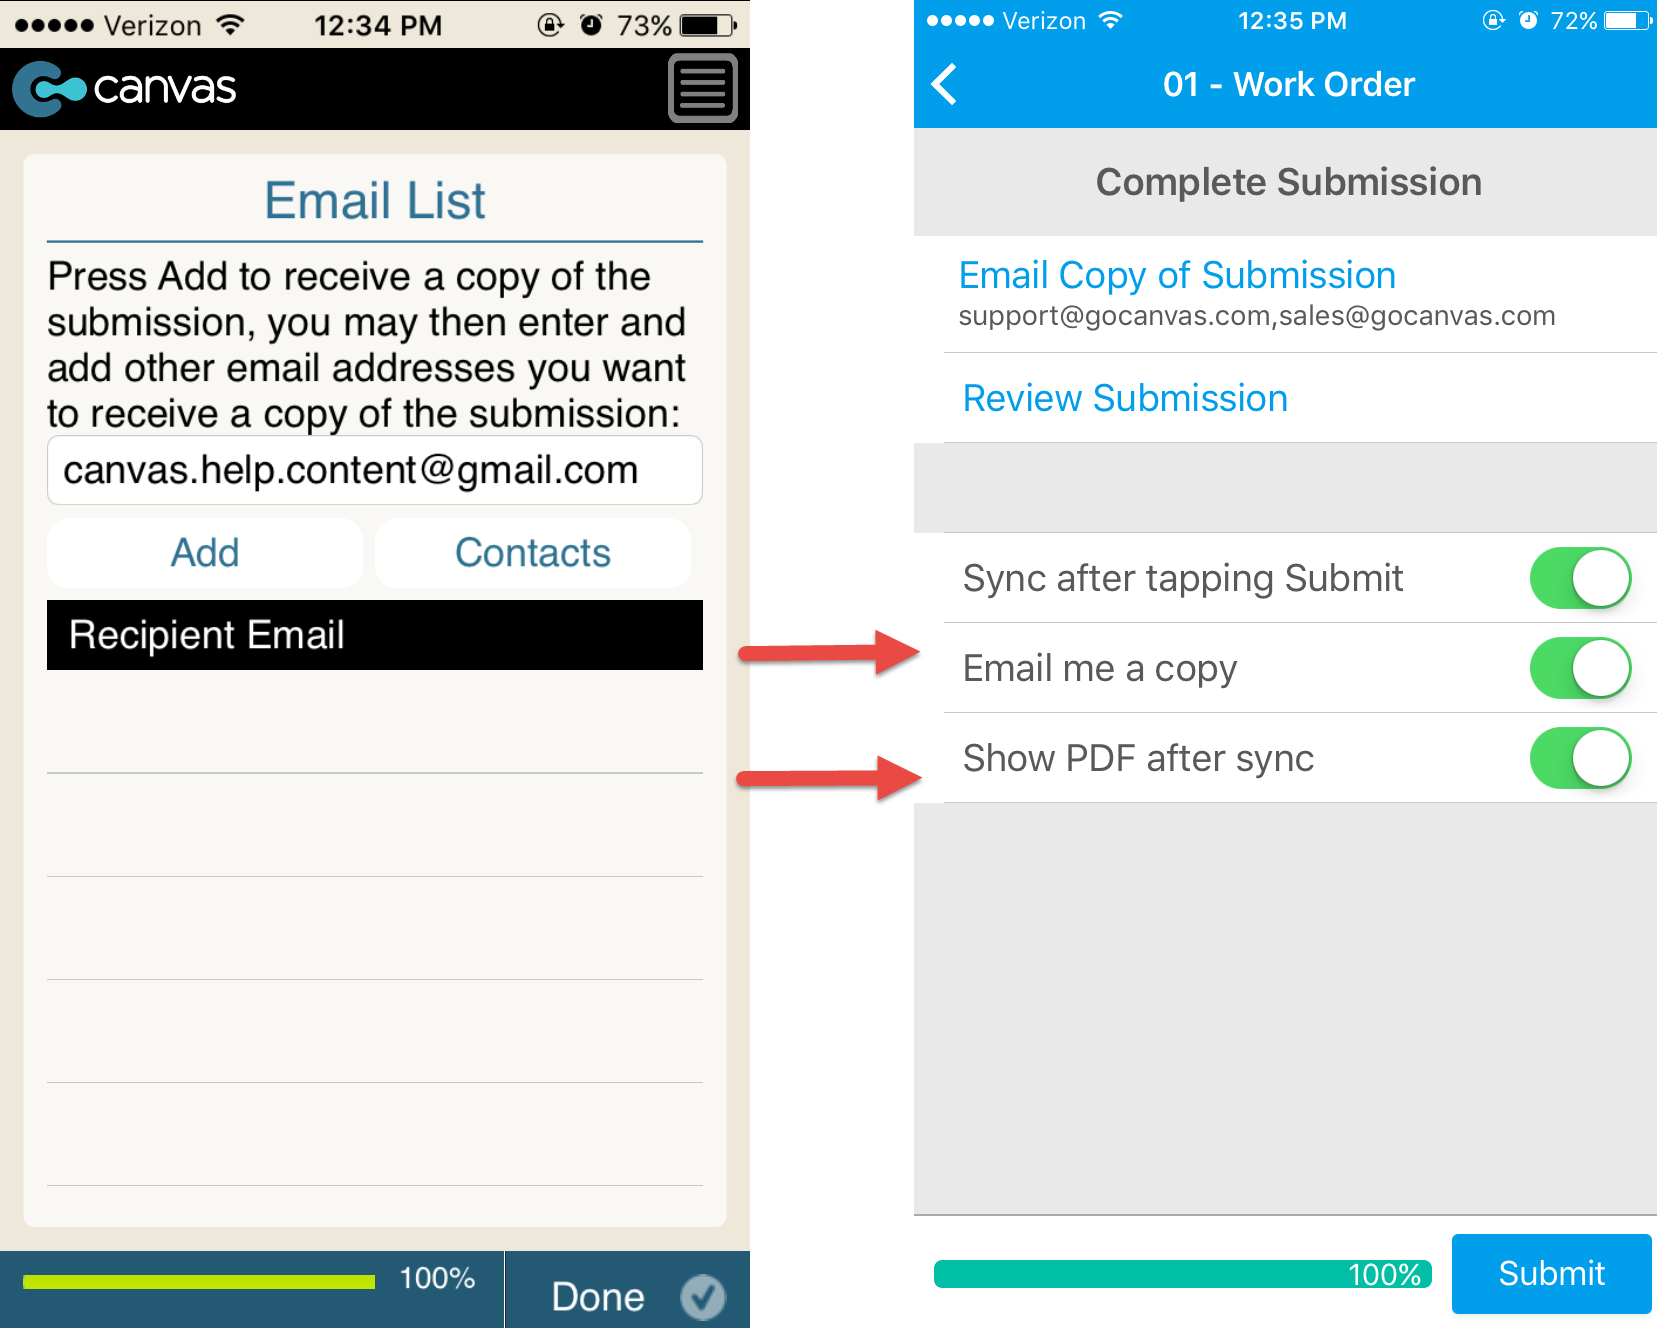 Canvas iOS app: old submission screen vs. new 2016 screen